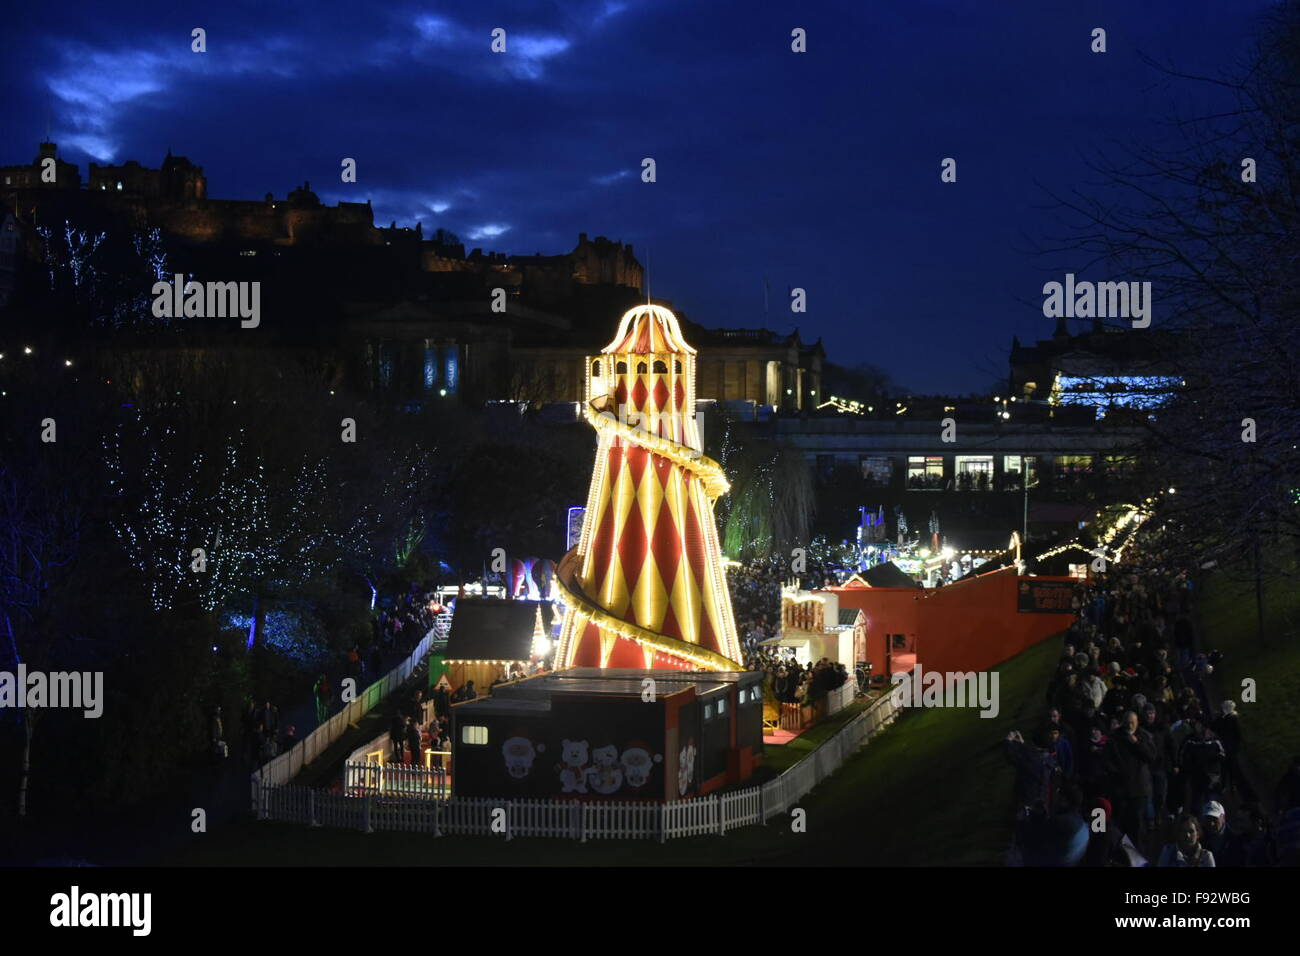 Edinburgh, Scotland, UK. 13th December, 2015. Shoppers throng to the Christmas Market in Princes Street Gardens, - Stock Image